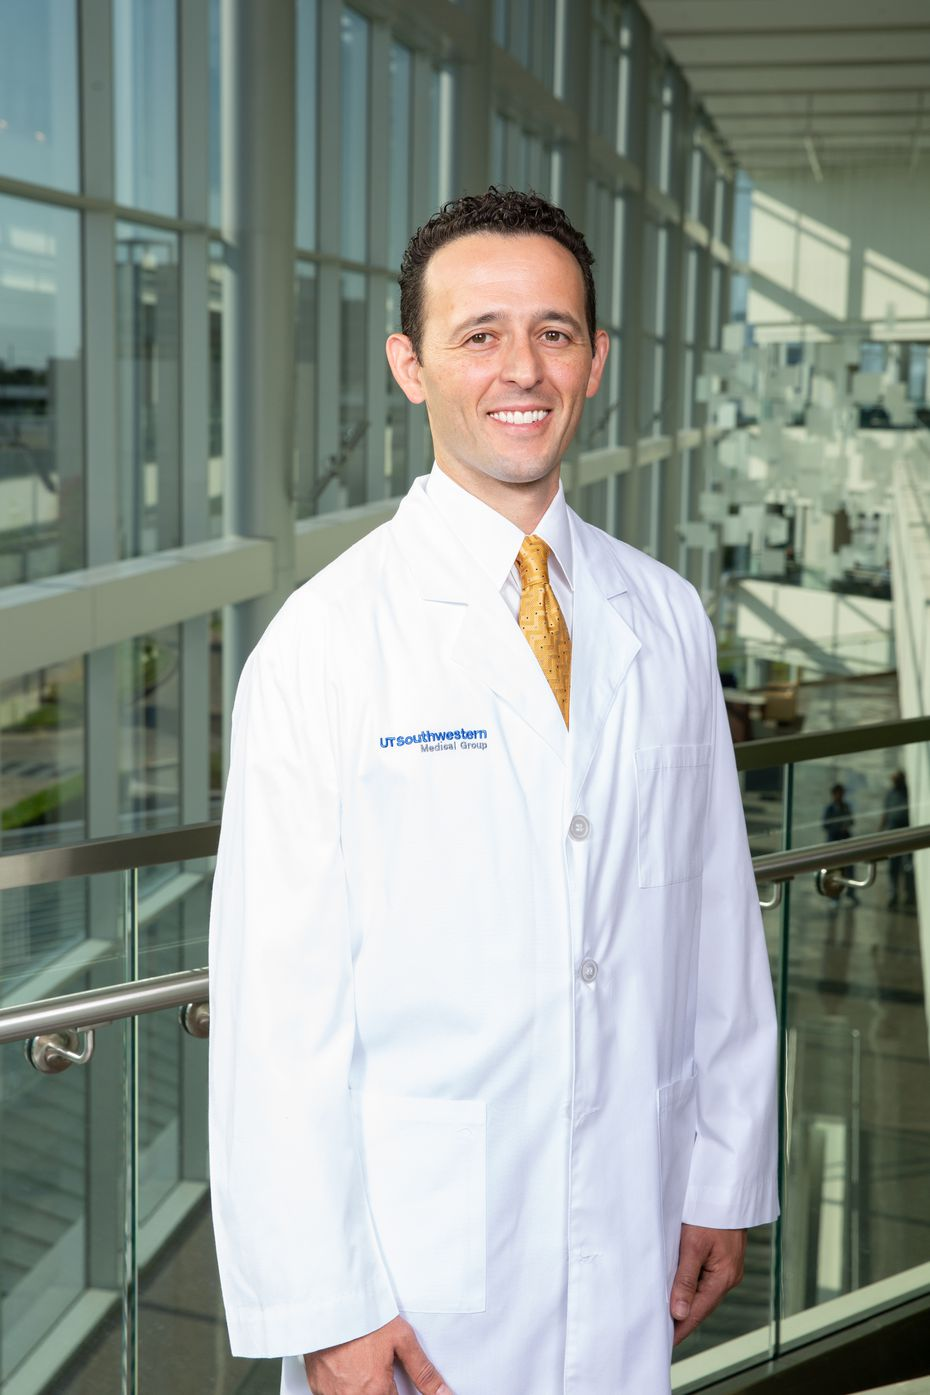 Dr. Juan Cabrera is the head of the Frisco branch of UT Southwestern's COVID Recover clinic. He was also one of Jim Doyle's doctors who helped him through his recovery. (UT Southwestern)